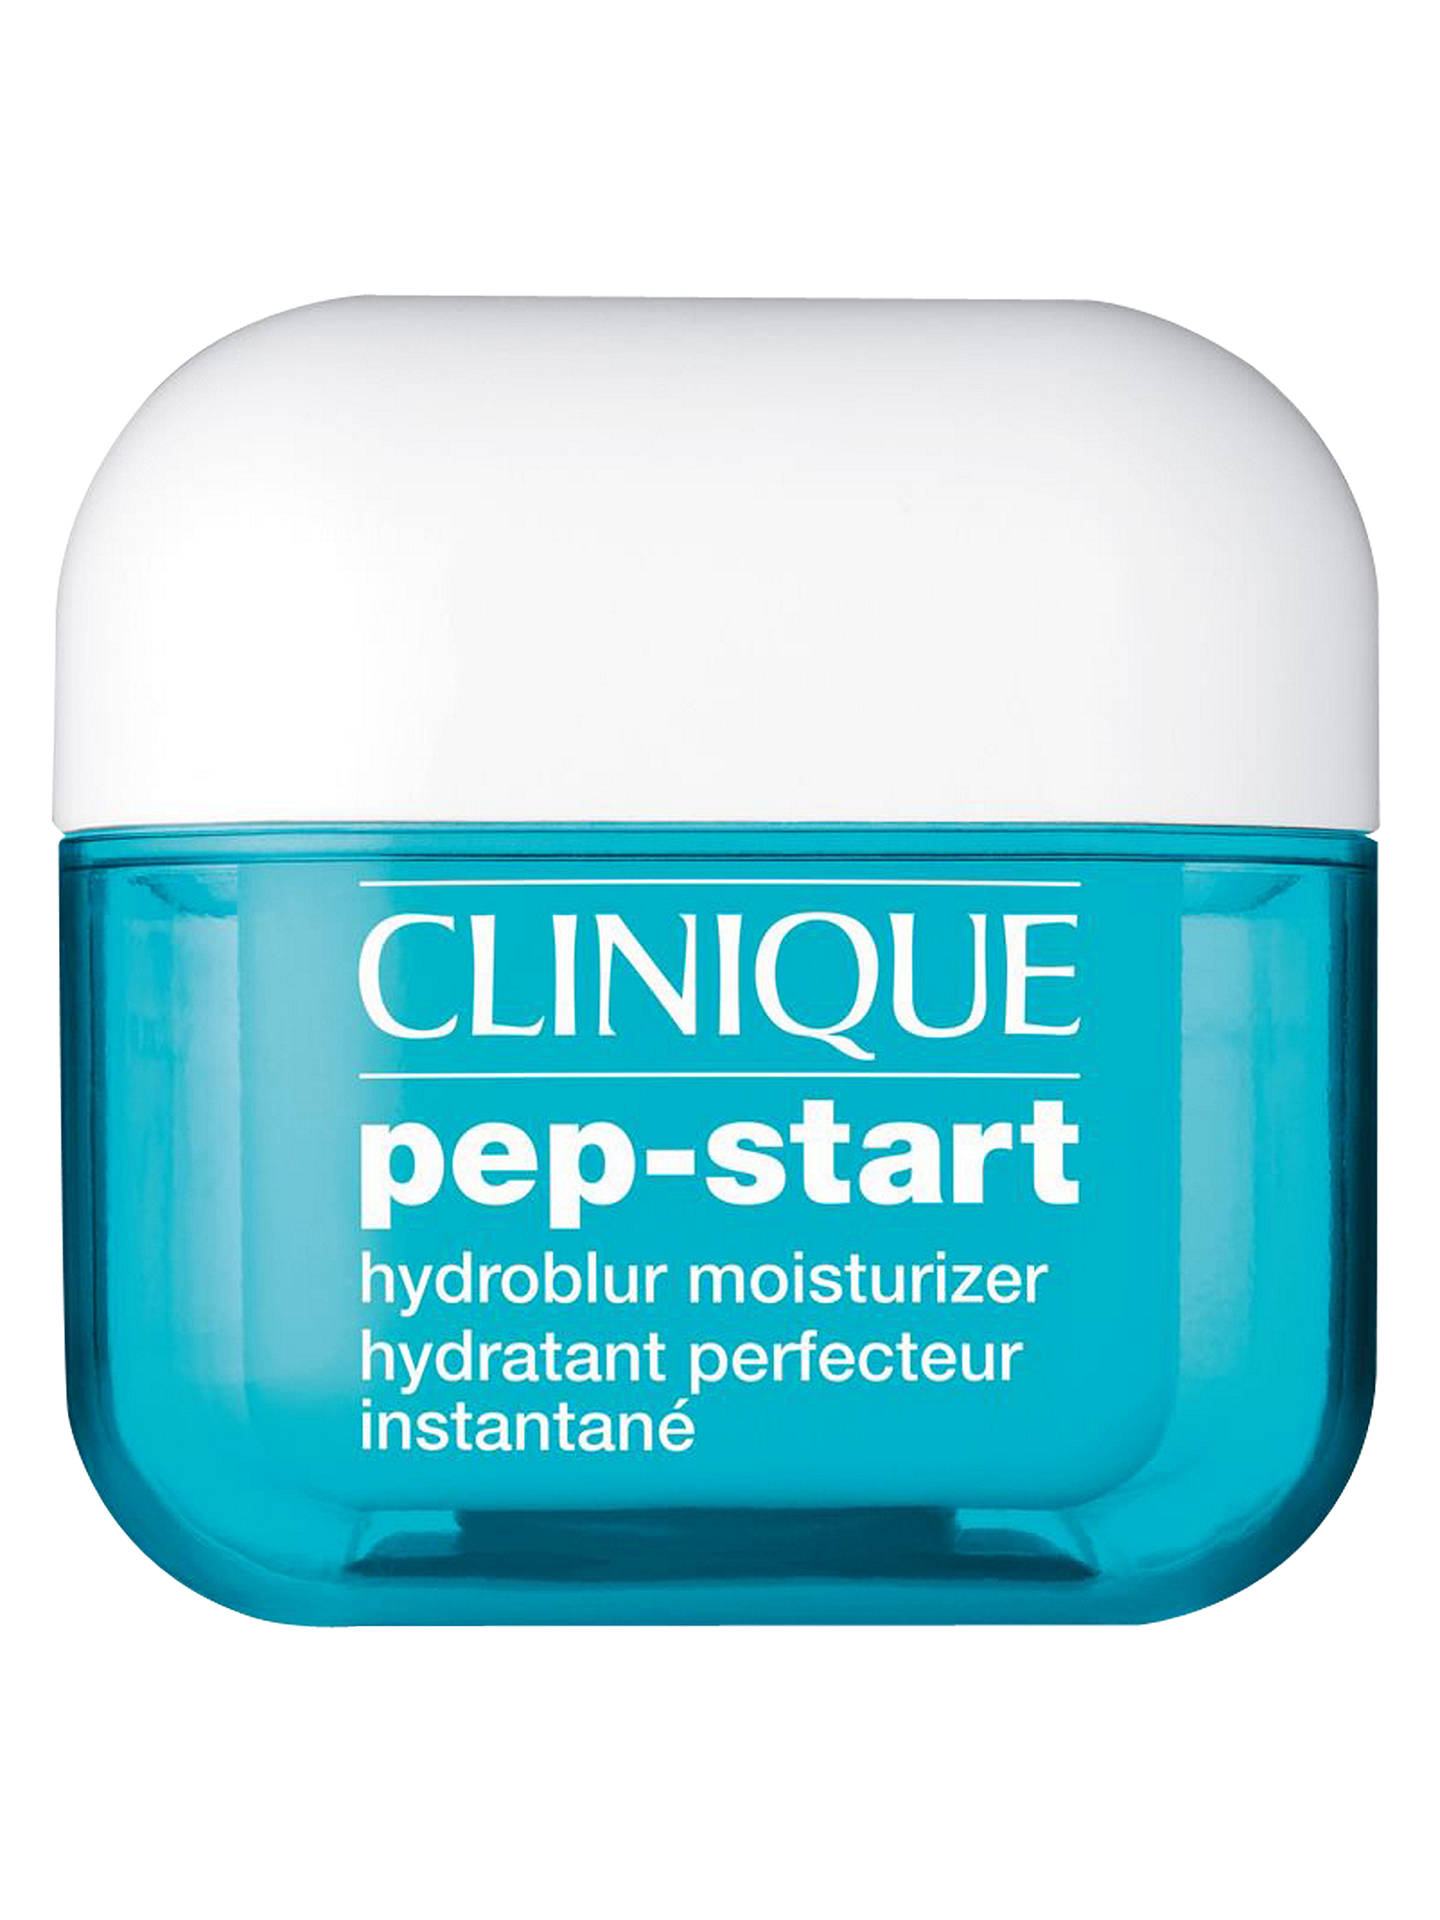 Image result for clinique hydroblur